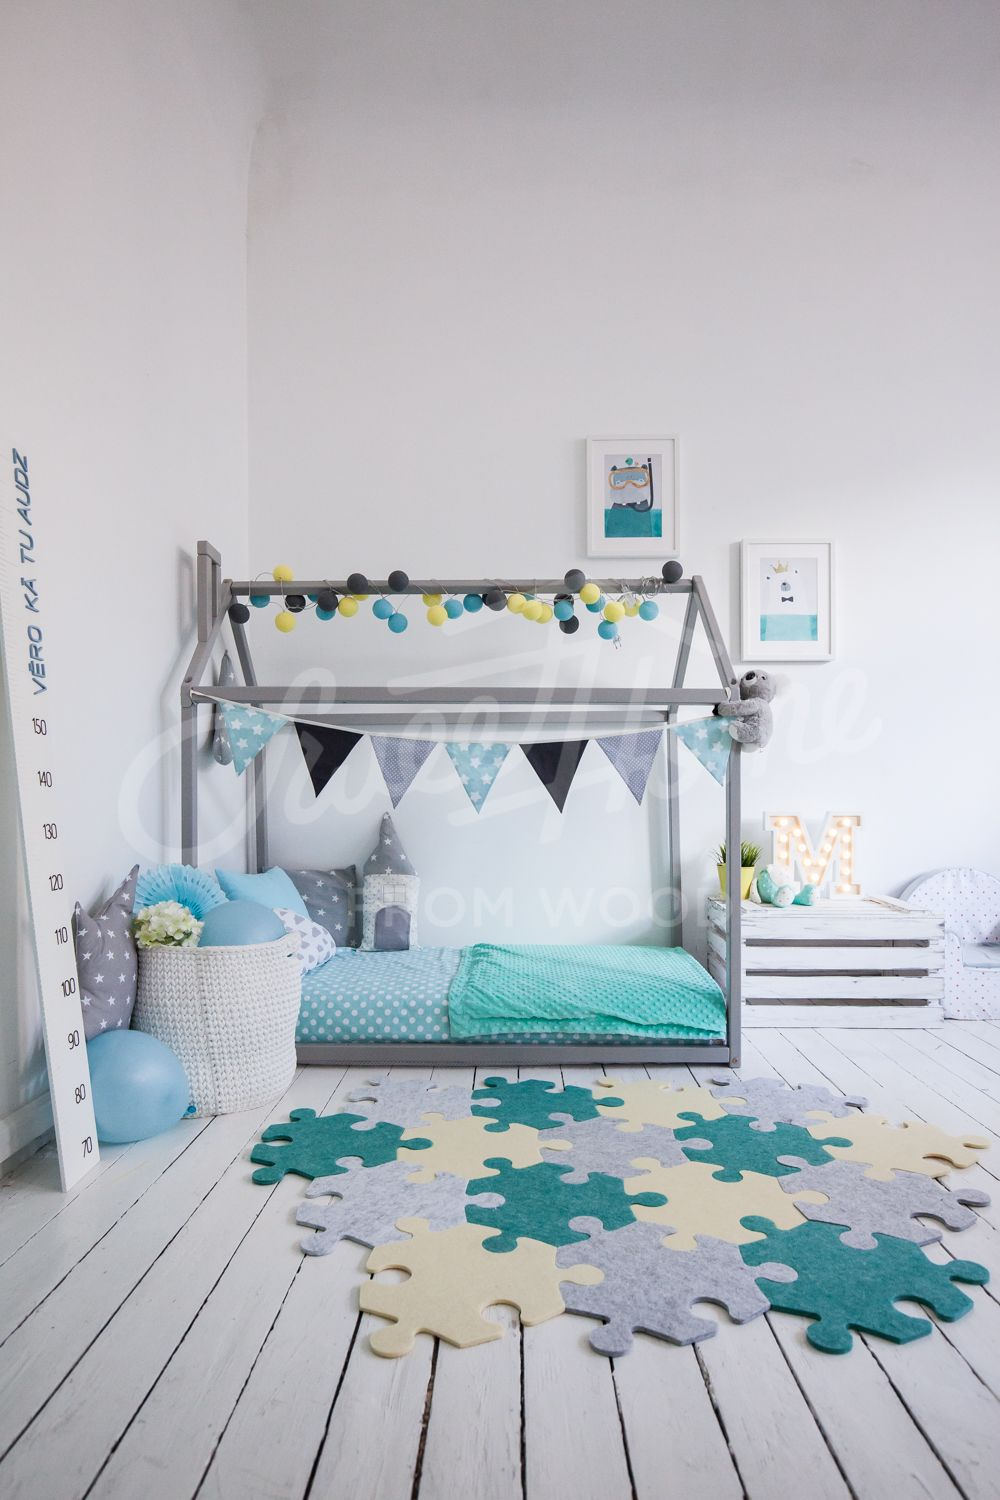 Mint And Grey Kids Room Interior Idea With Puzle Rug Carpet